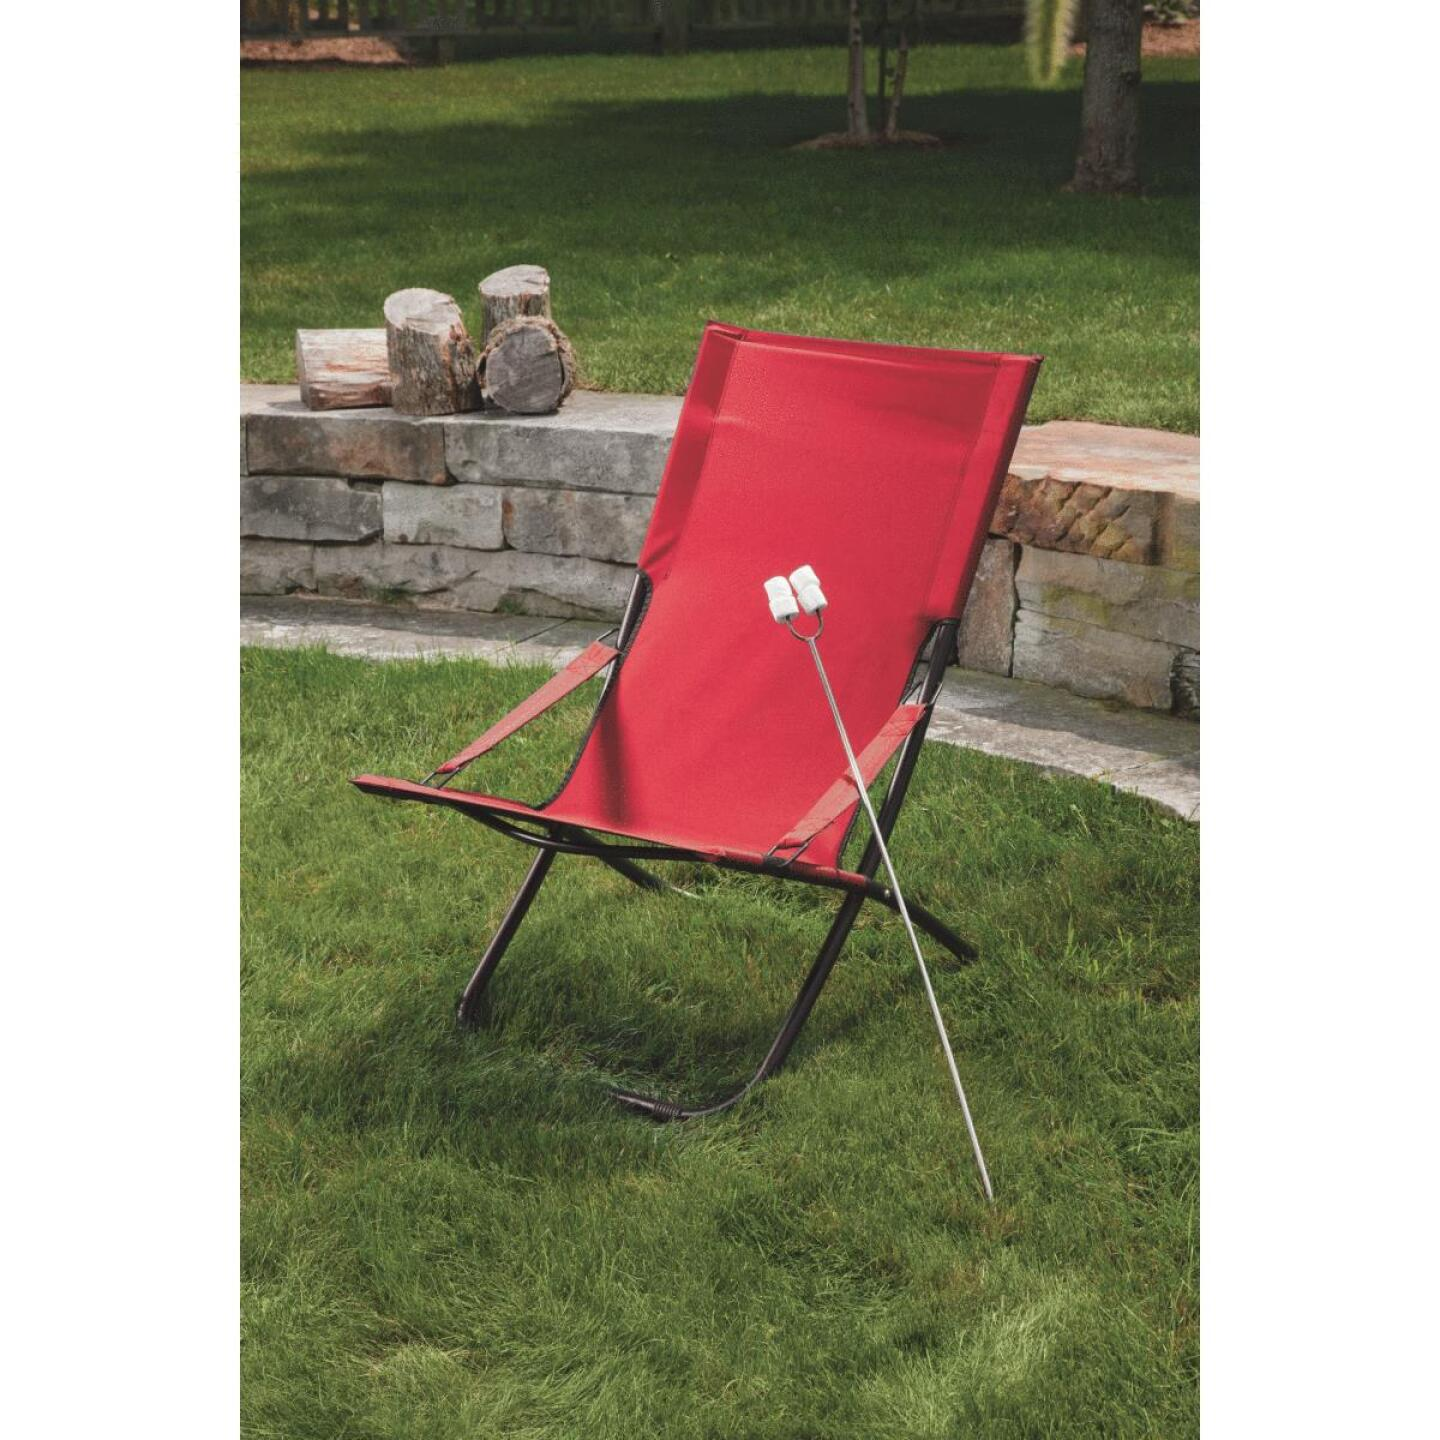 Pride Family Brands Folding Hammock Chair, Red Image 4